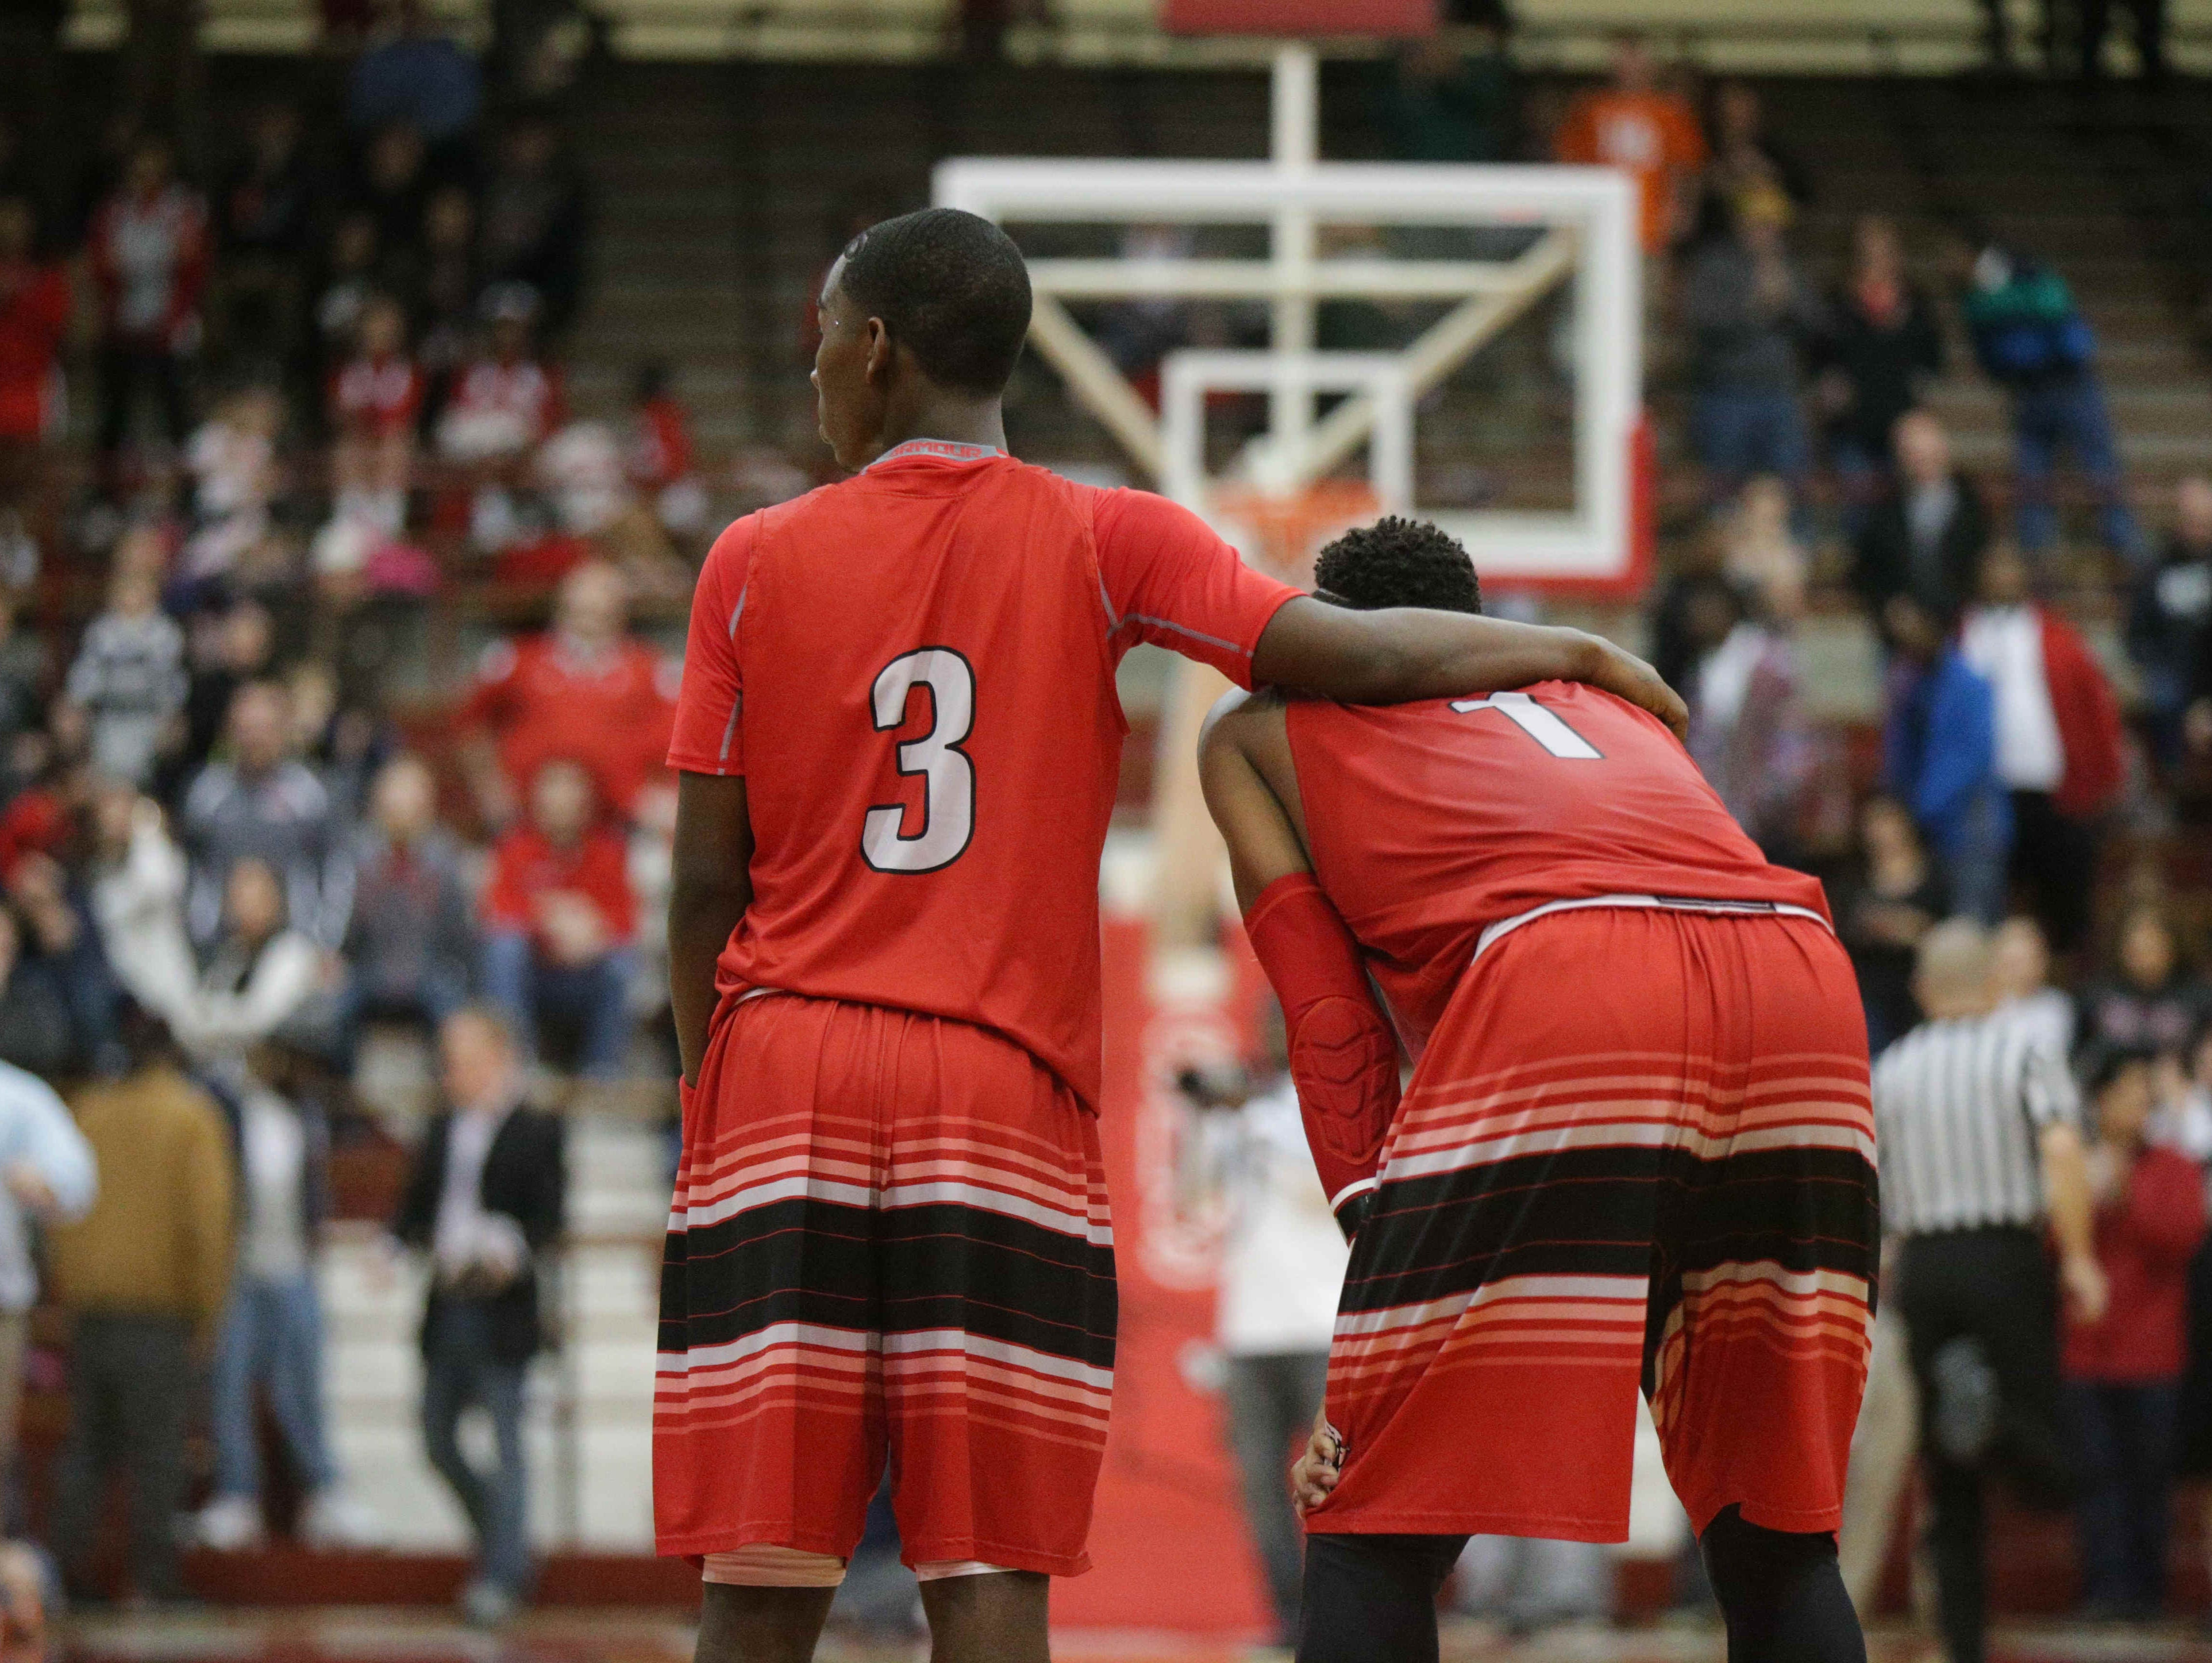 Can Southport win big in its home gym Saturday?